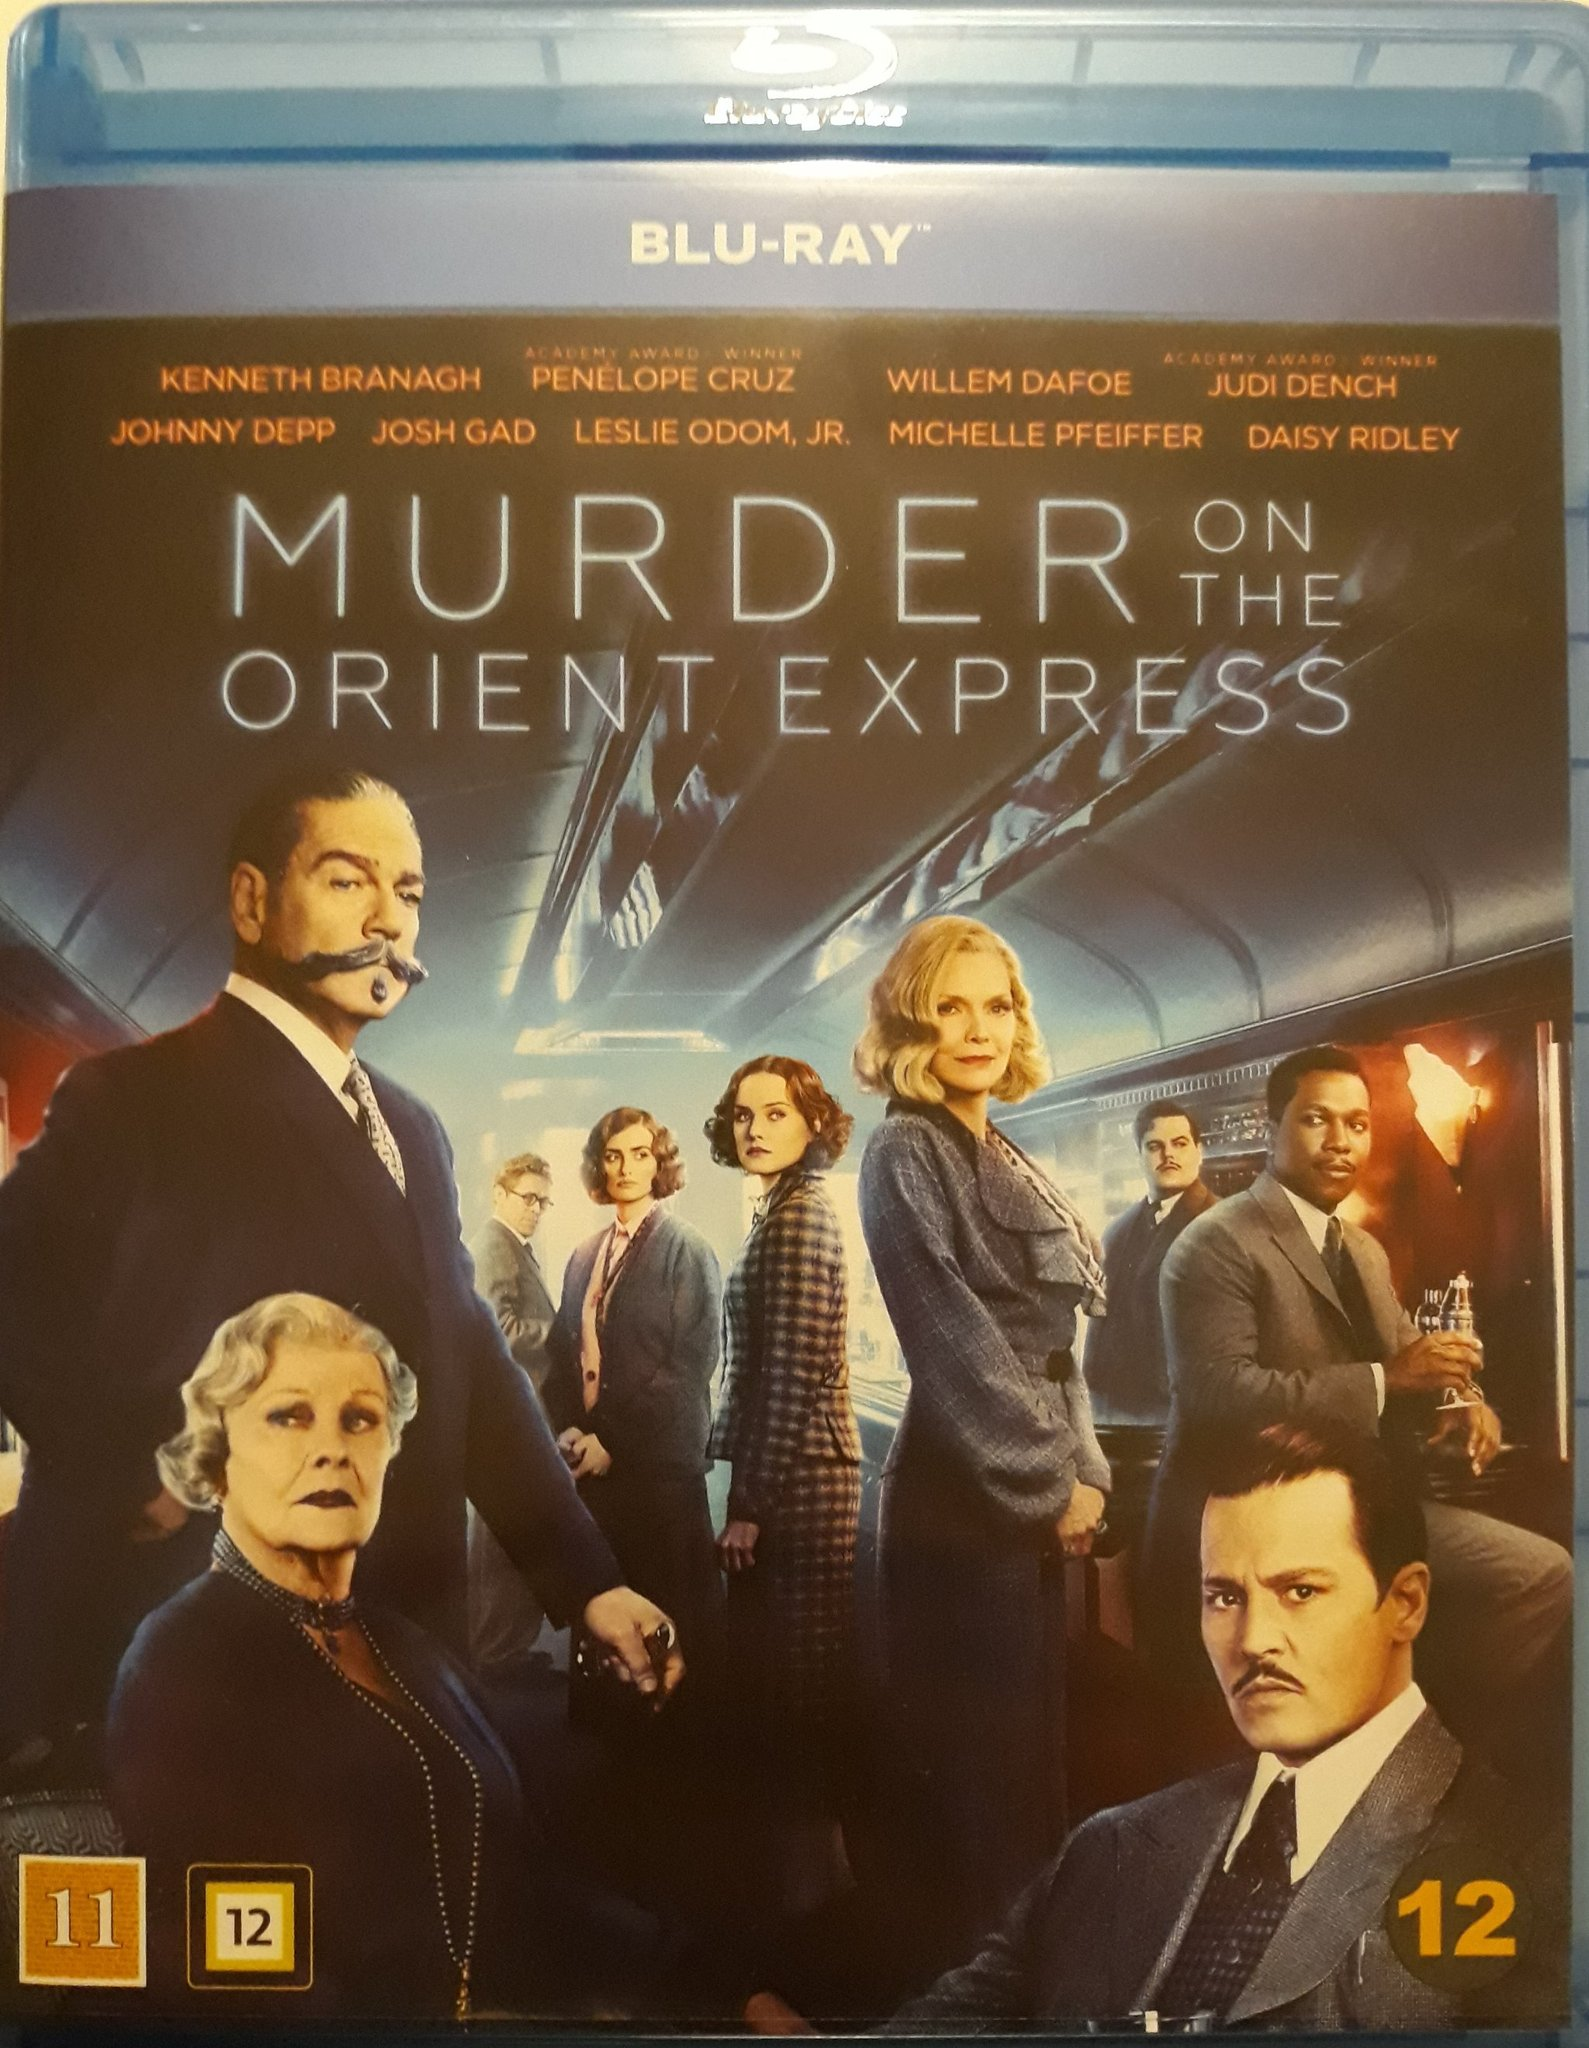 MURDER ON THE ORIENT EXPRESS / MORDET PÅ ORIENT EXPRESSEN 2017 blu-ray